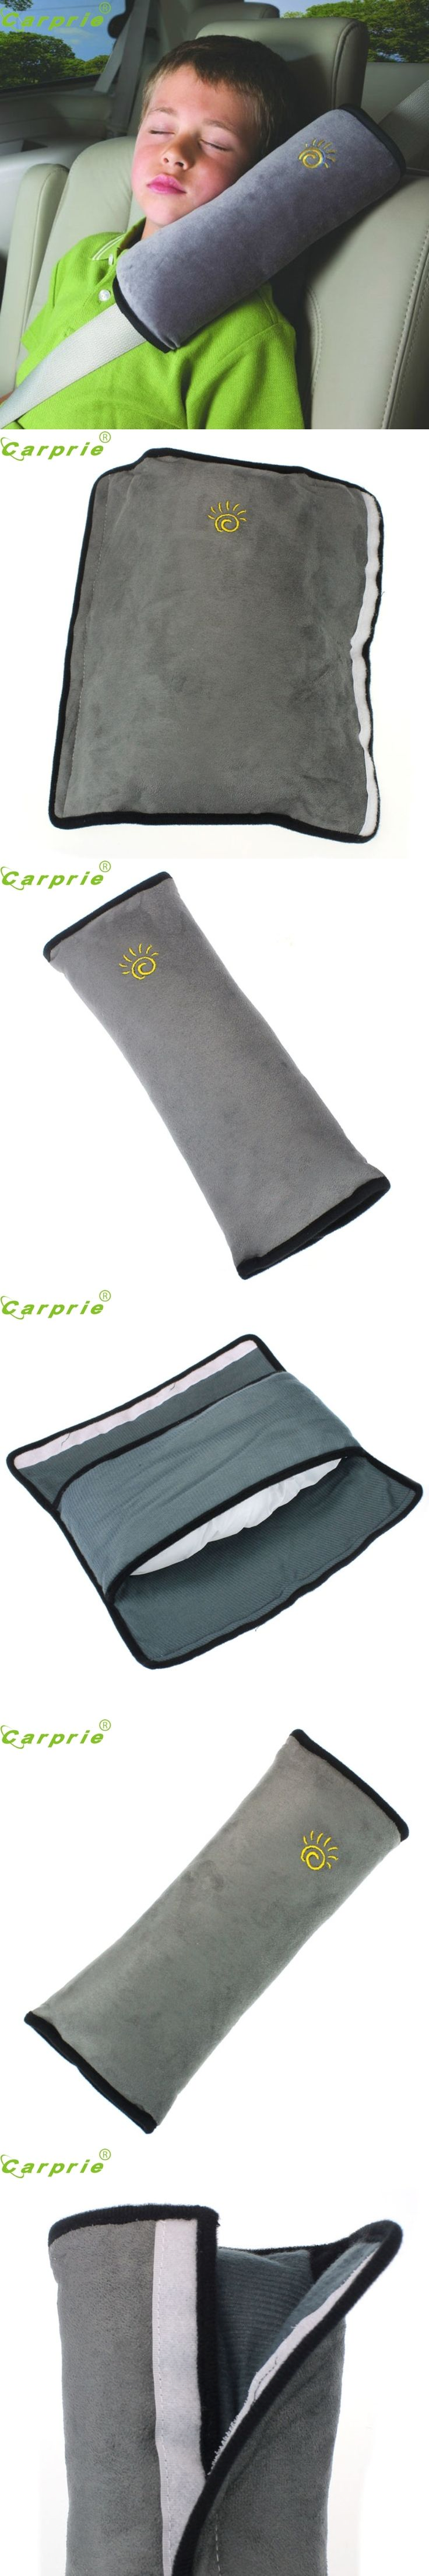 28x9x12cm Baby Children Safety Strap Car Seat Belts Pillow Shoulder Protection Top Quality Micro-suede Fabric Car-Styling Nov 8